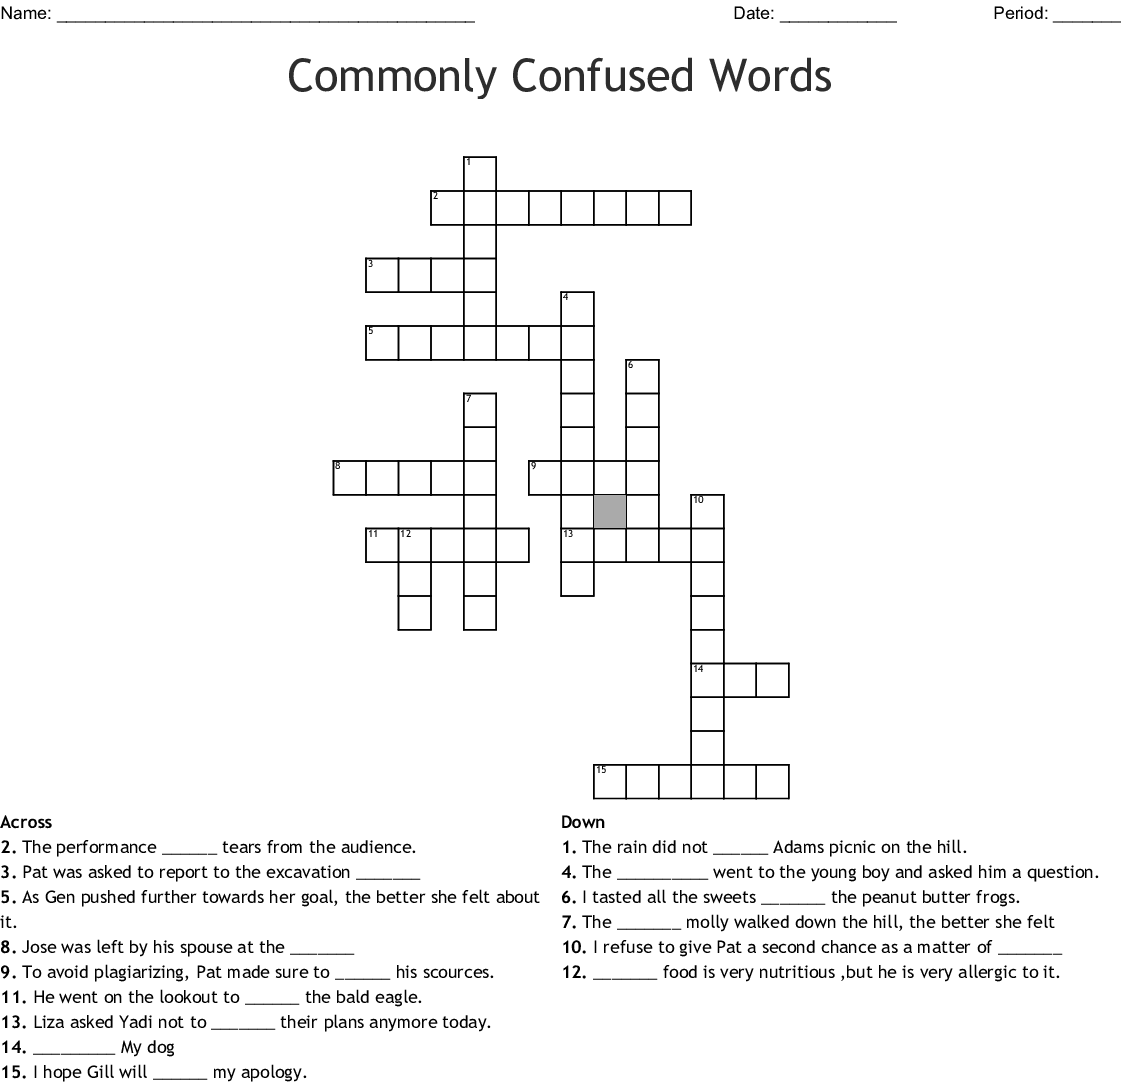 Commonly Confused Words Crossword